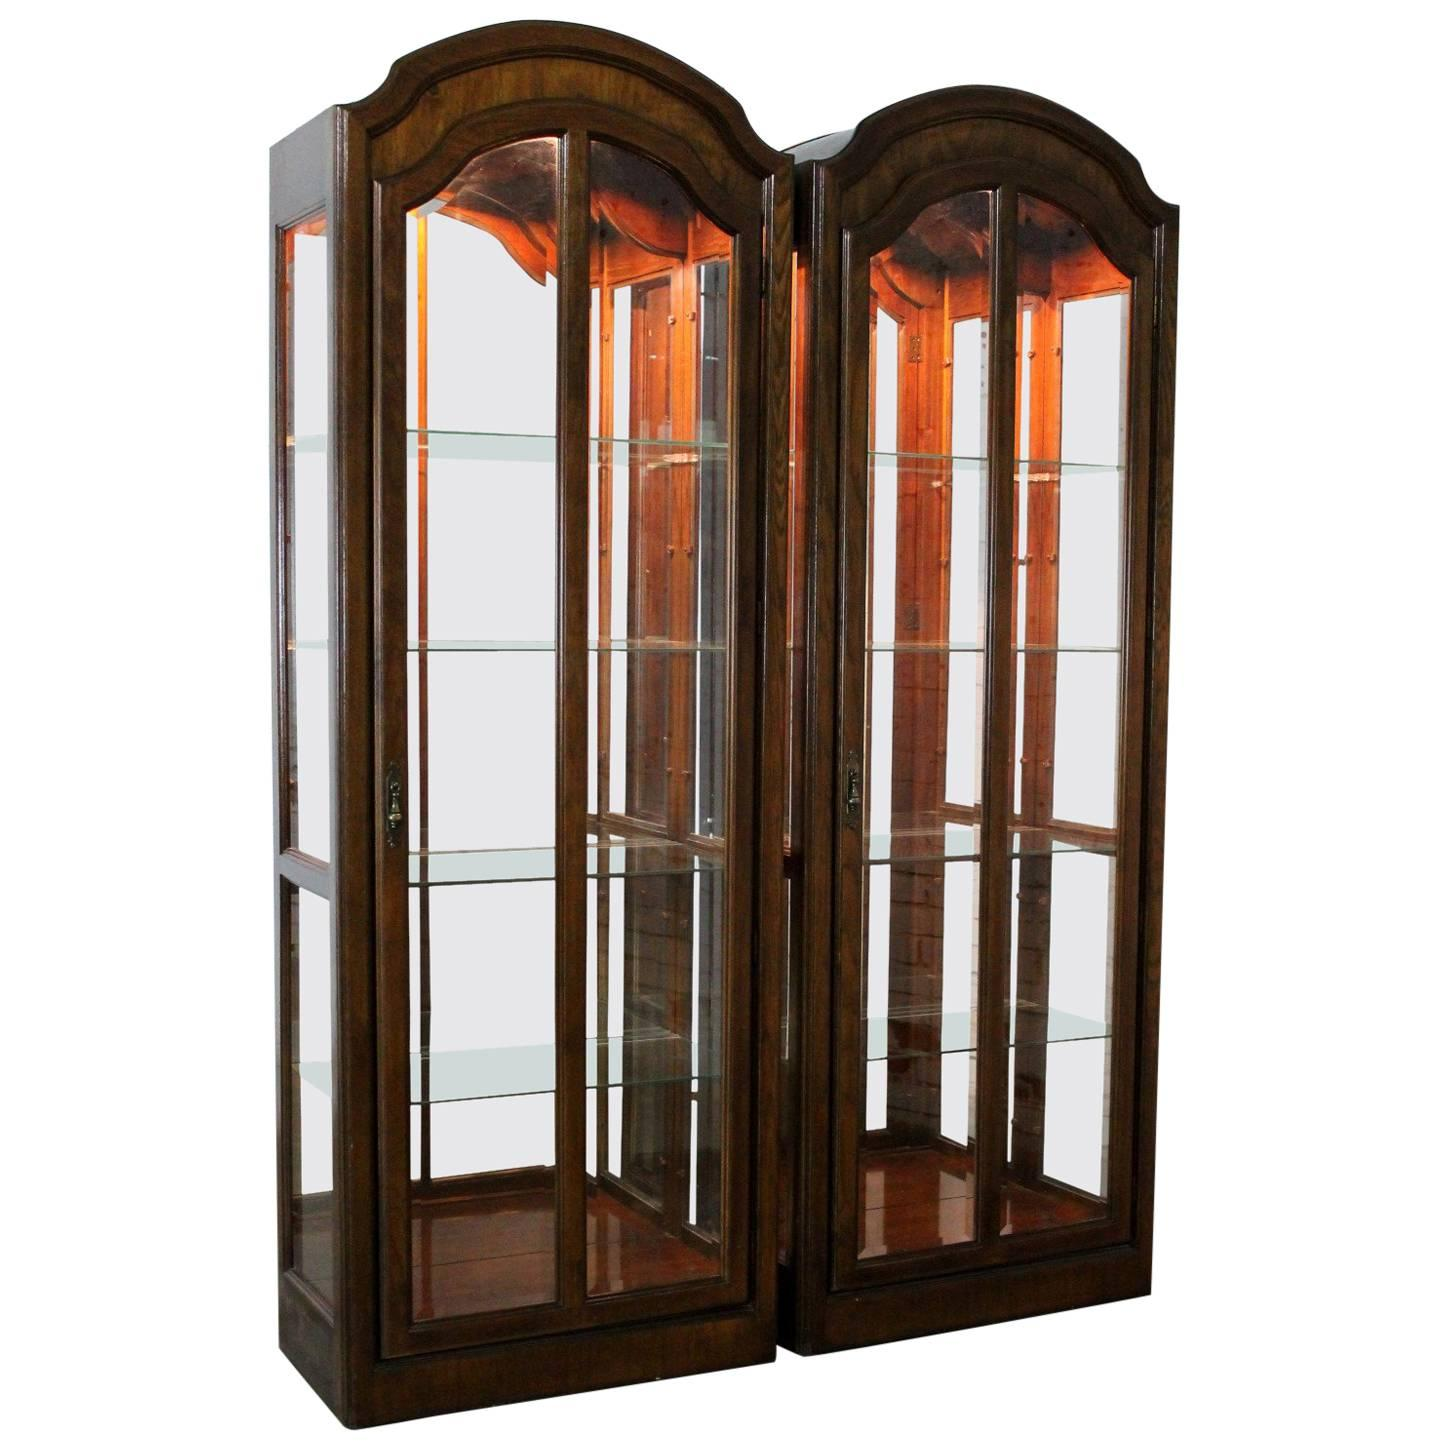 Delicieux Lighted Curio Cabinets With Arched Top In Dark Wood A Vintage, Pair